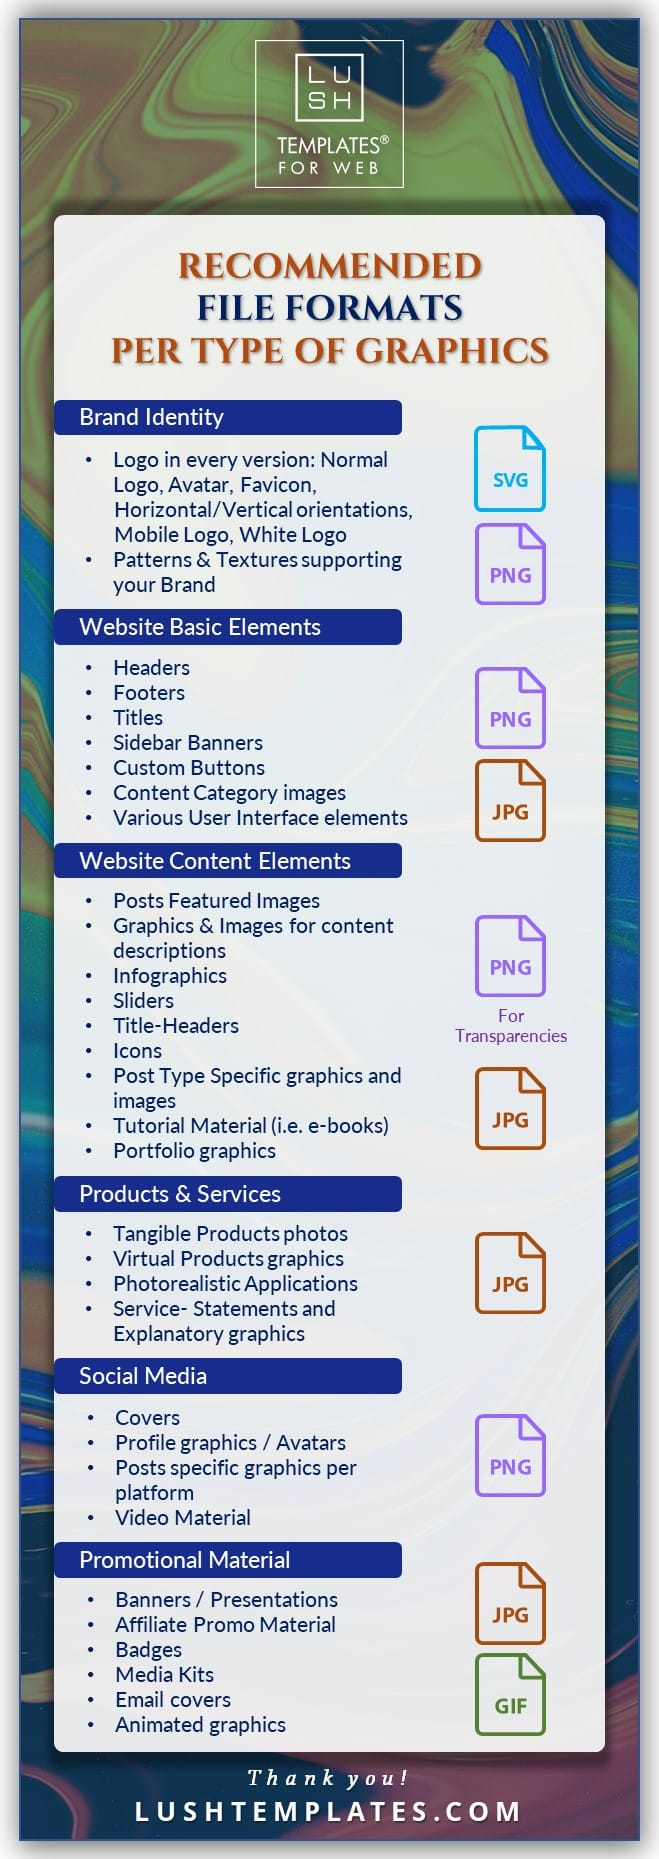 Recomended-file-Formats-per-graphic-type Jpg